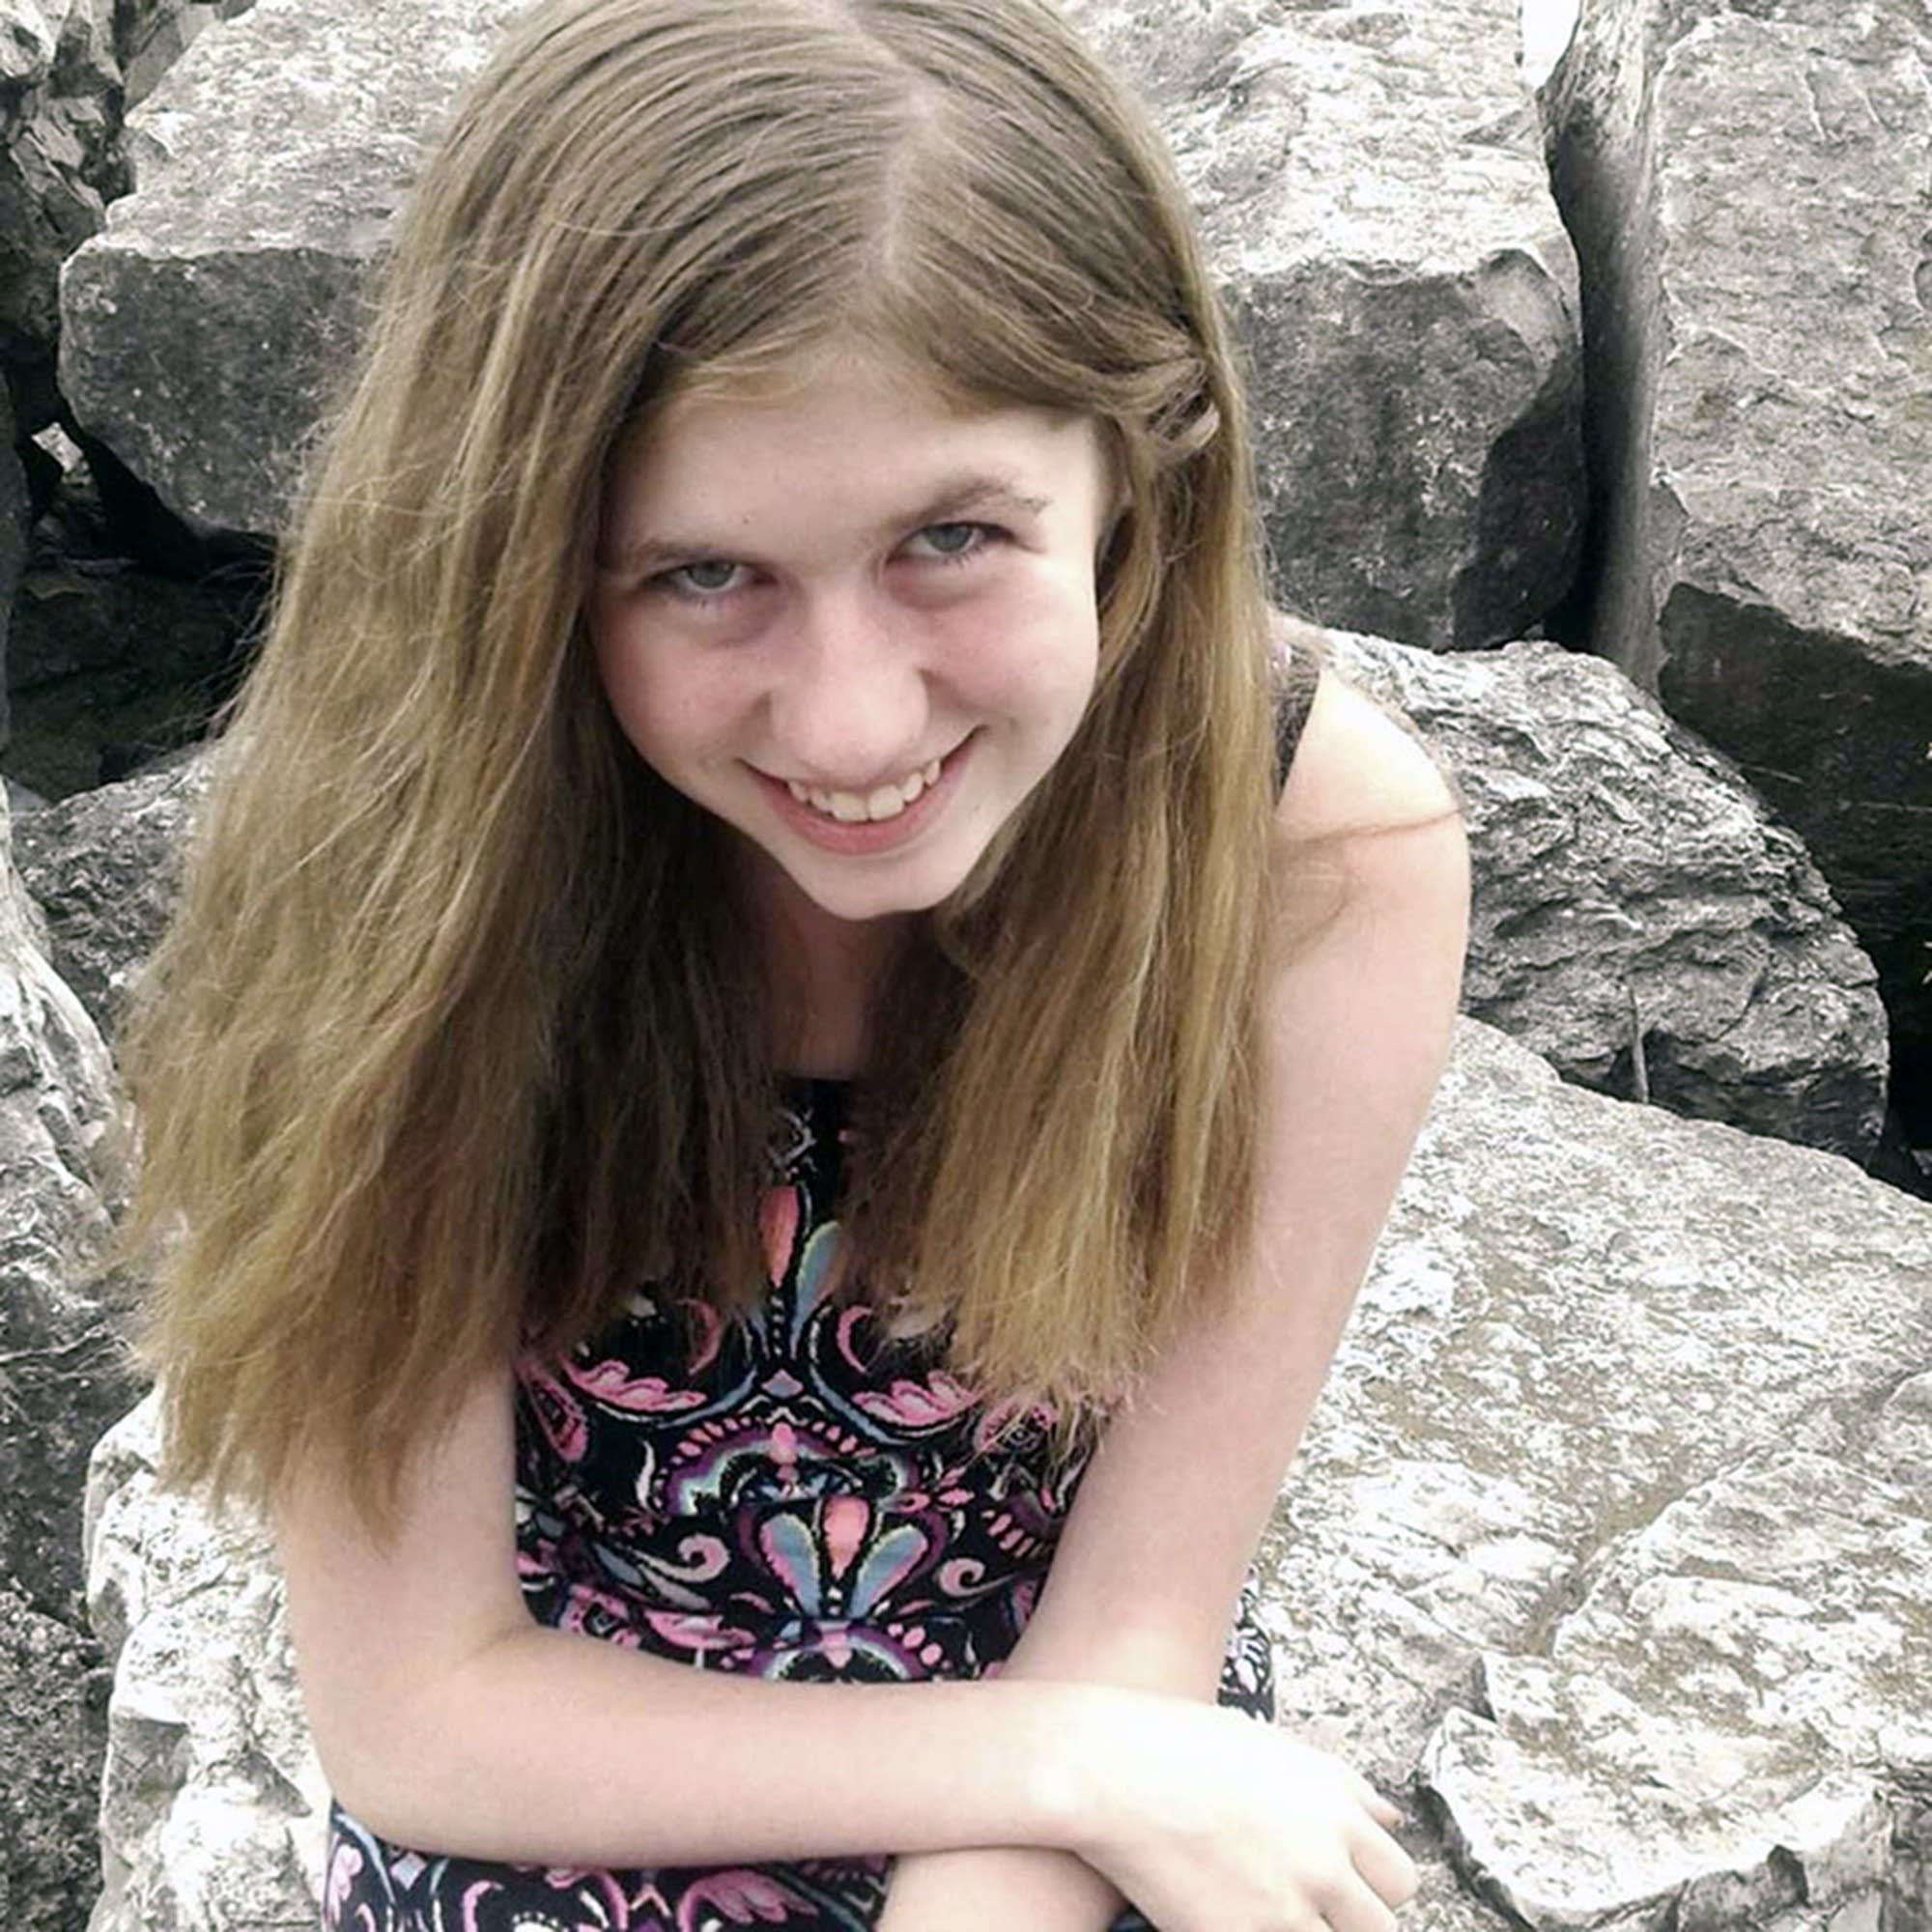 Authorities say that Jayme Closs, a missing teenage girl could be in danger